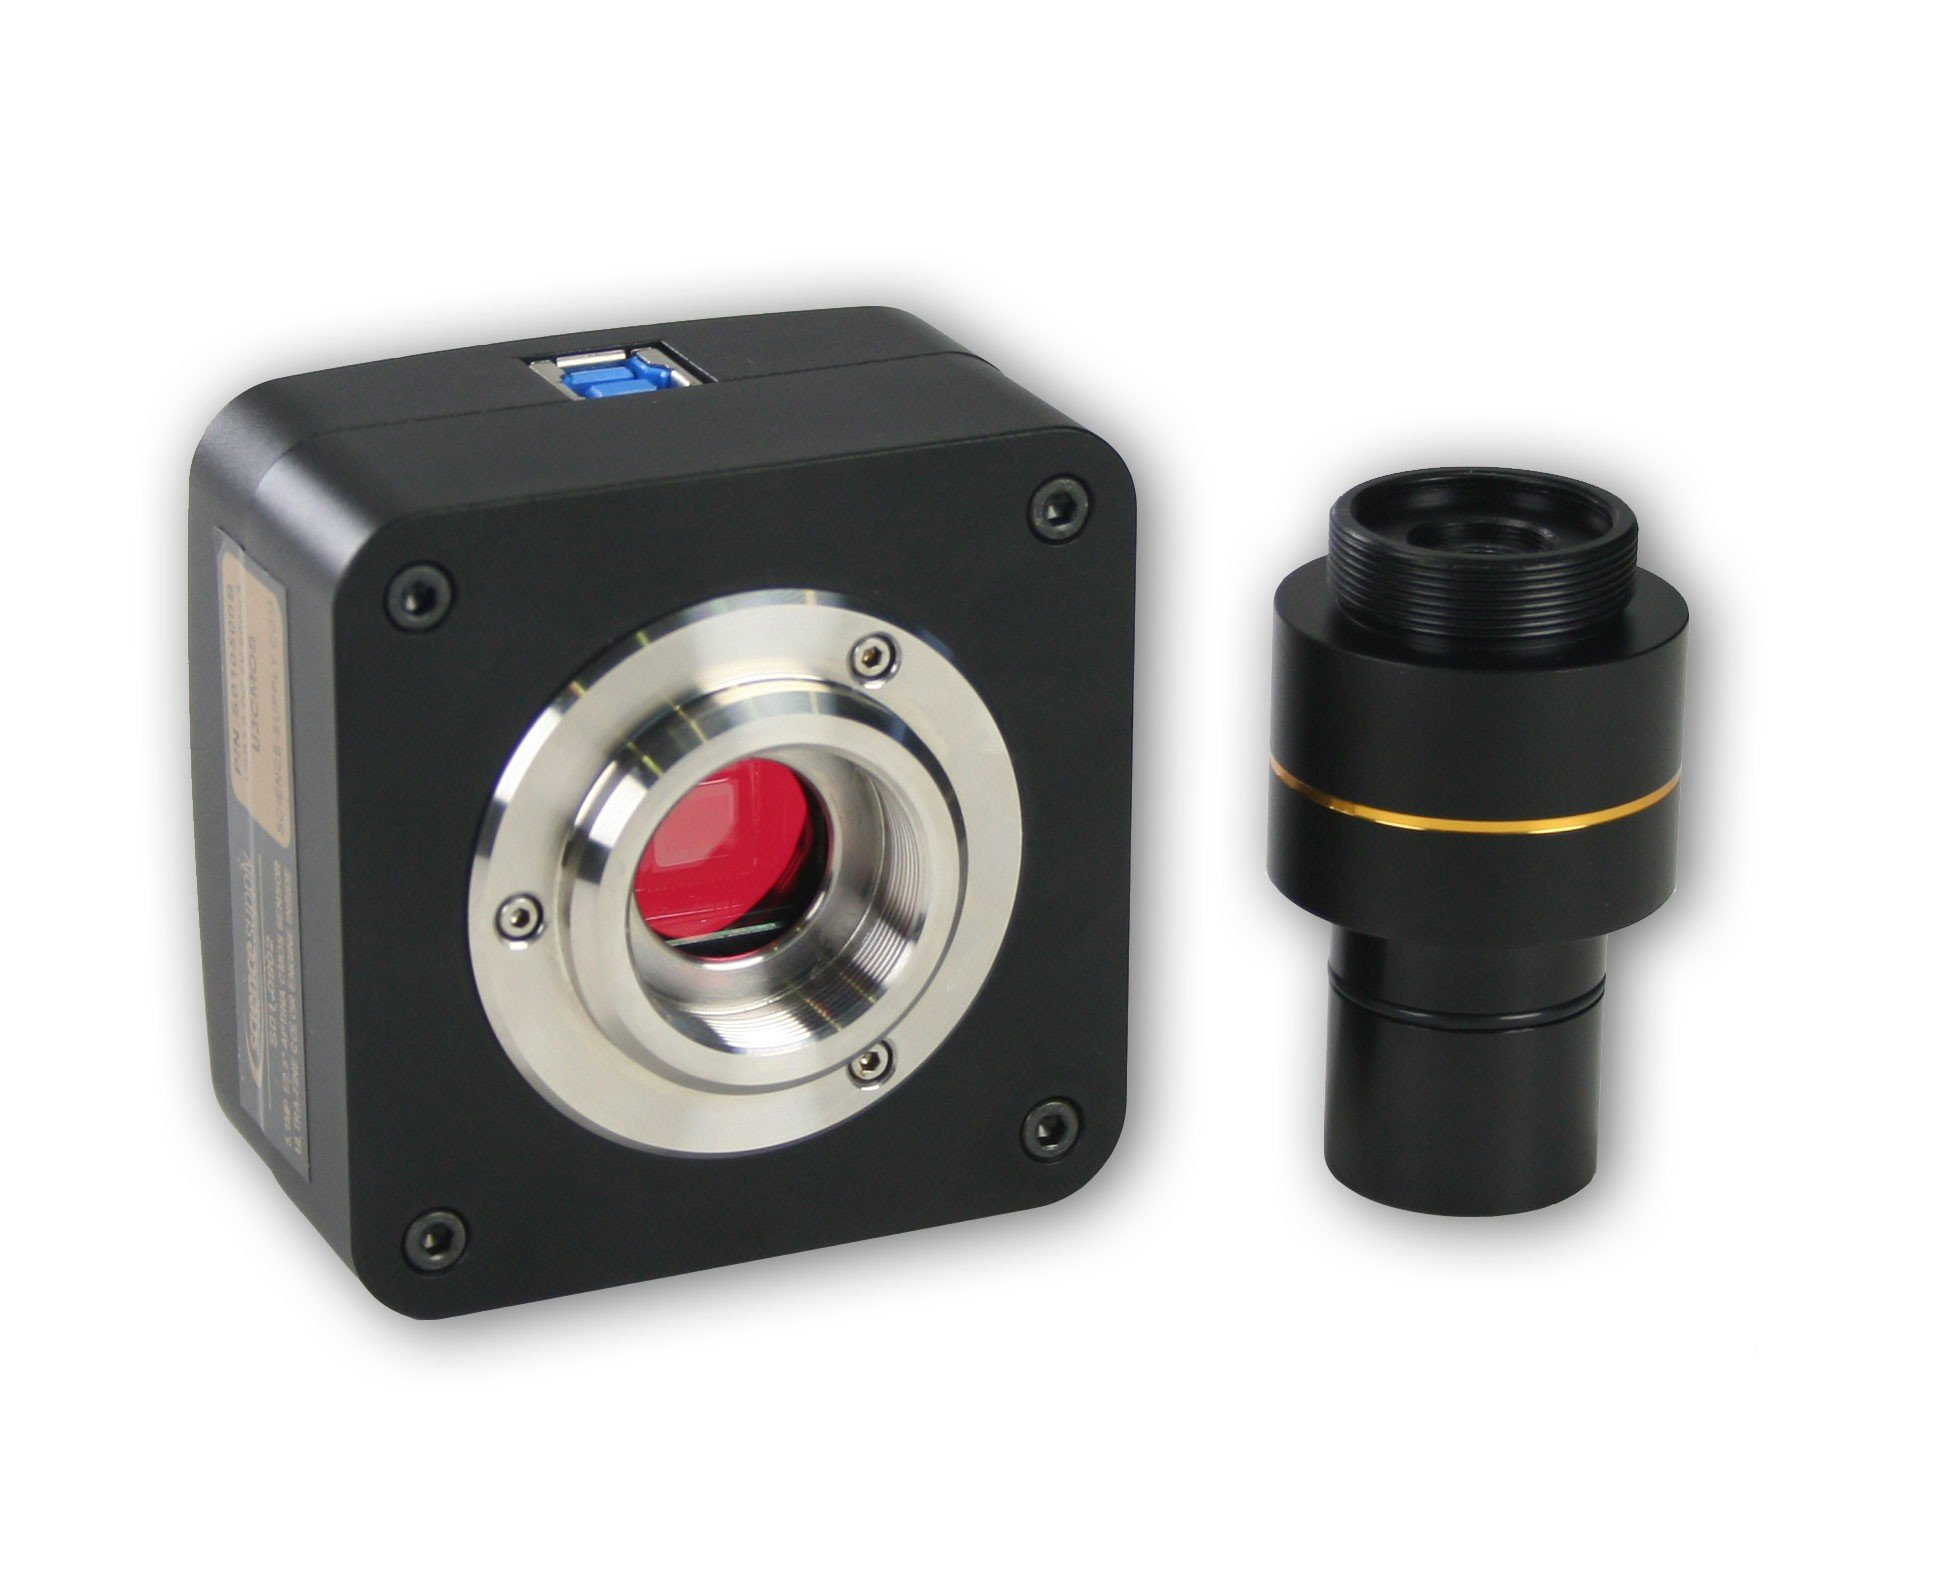 Digital 5.0MP Microscope Camera for Compound and Stereo Microscopes (USB 3.0)